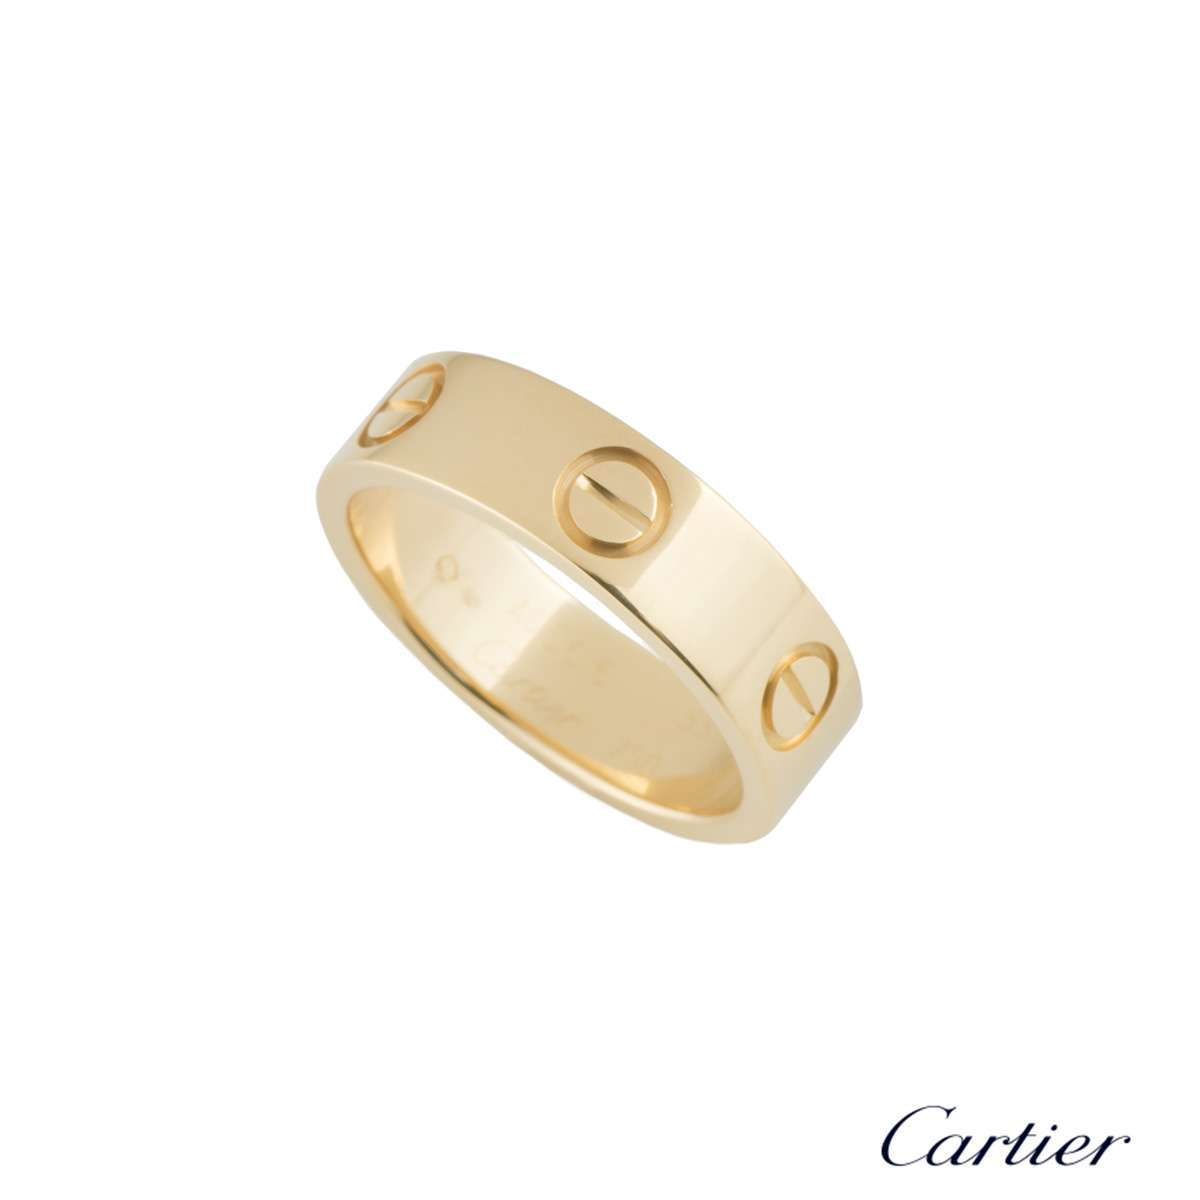 Cartier Yellow Gold Love Ring Size 57B4084600